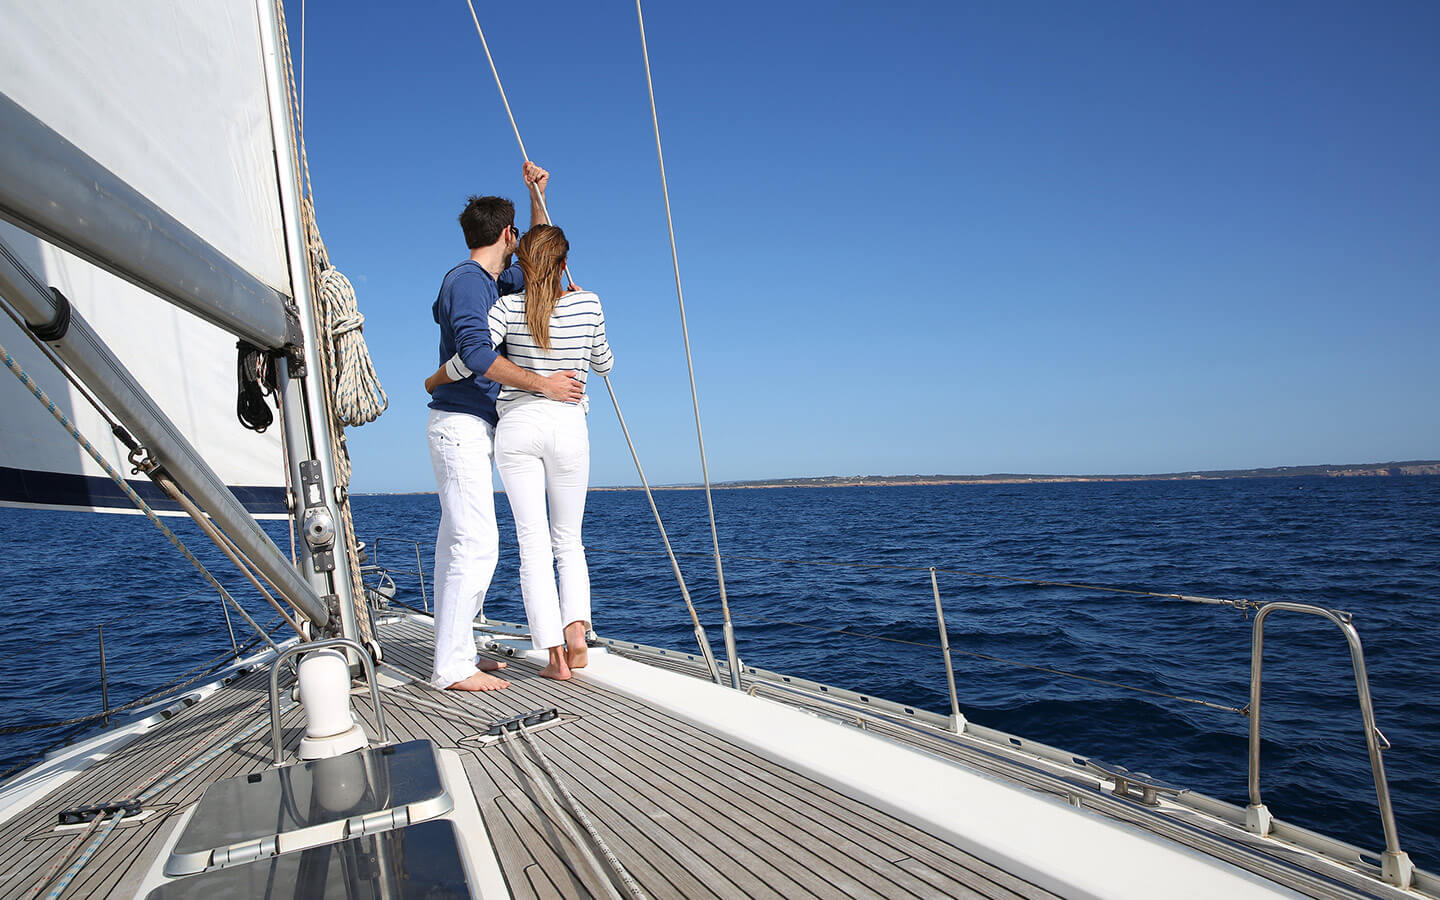 Couple on a sail boat in Cape Cod, MA